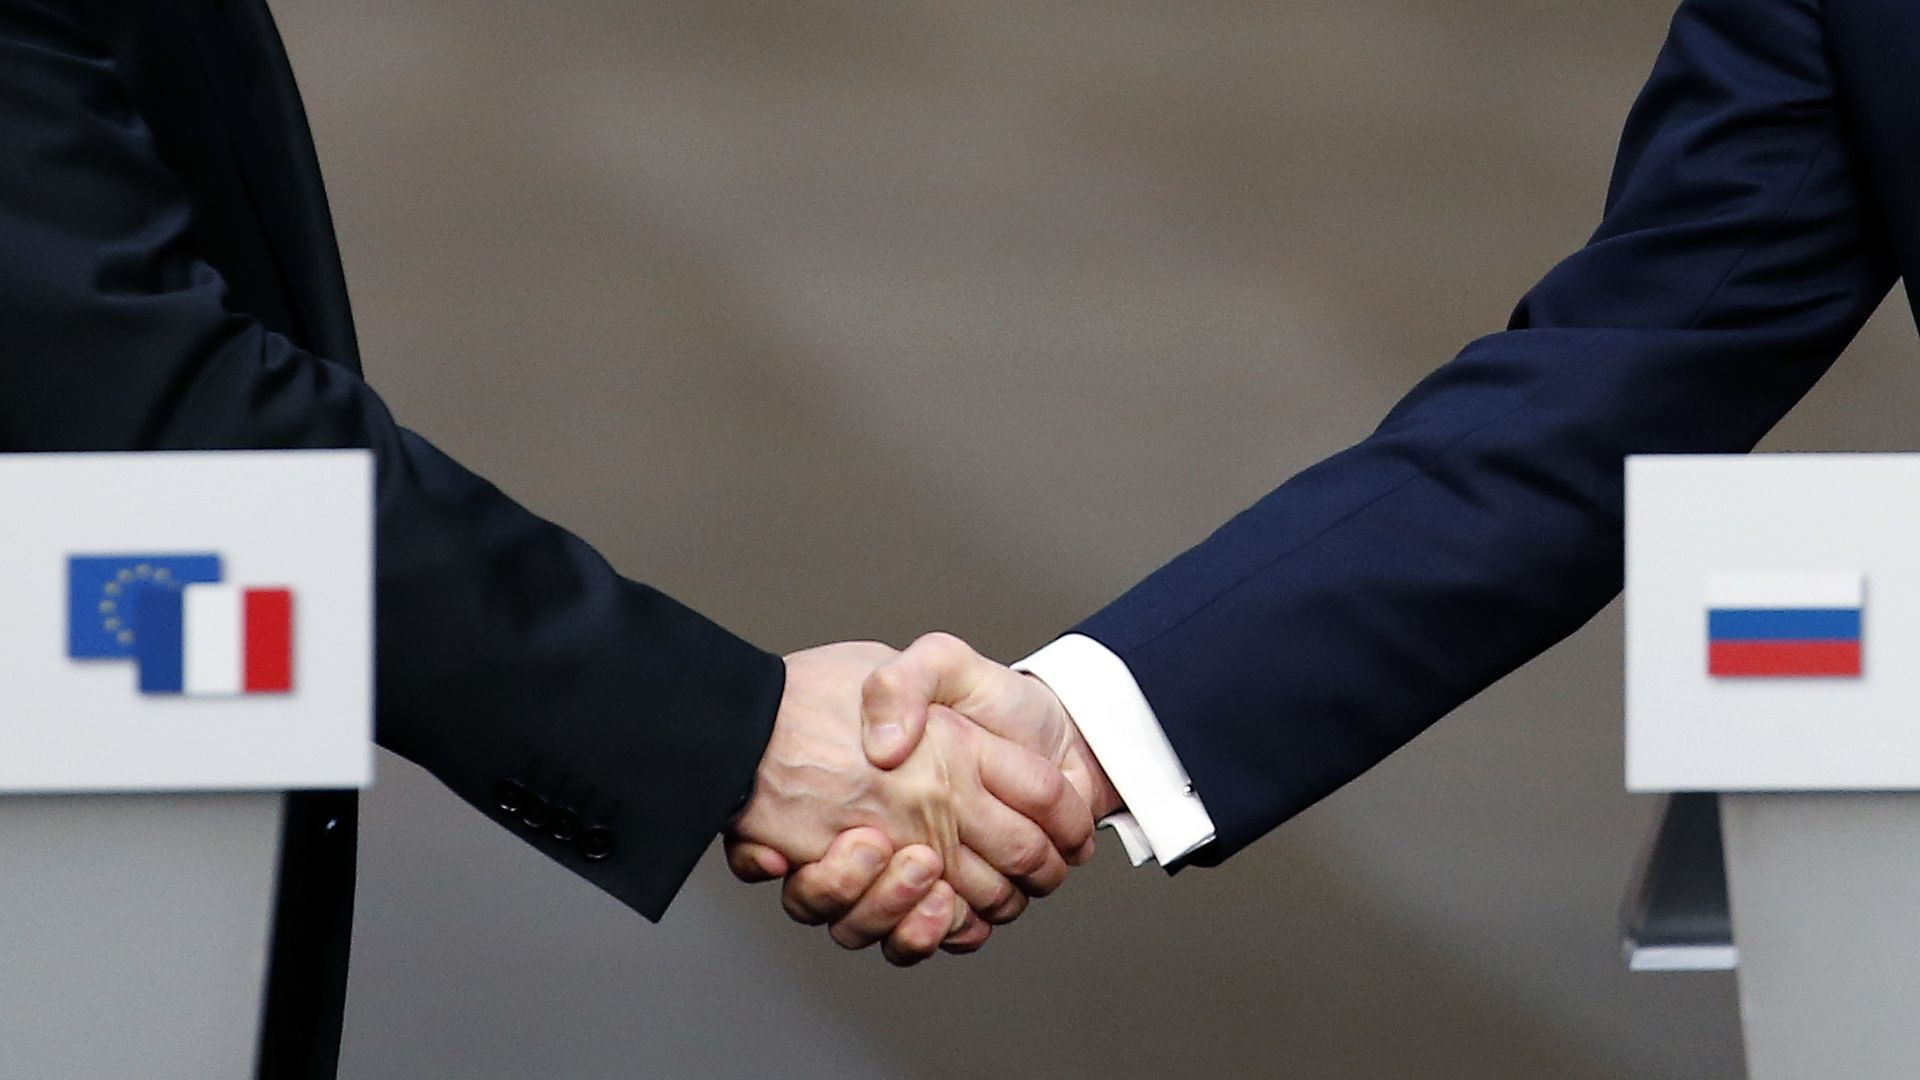 Putin's hand and Macron's hand during a handshake.